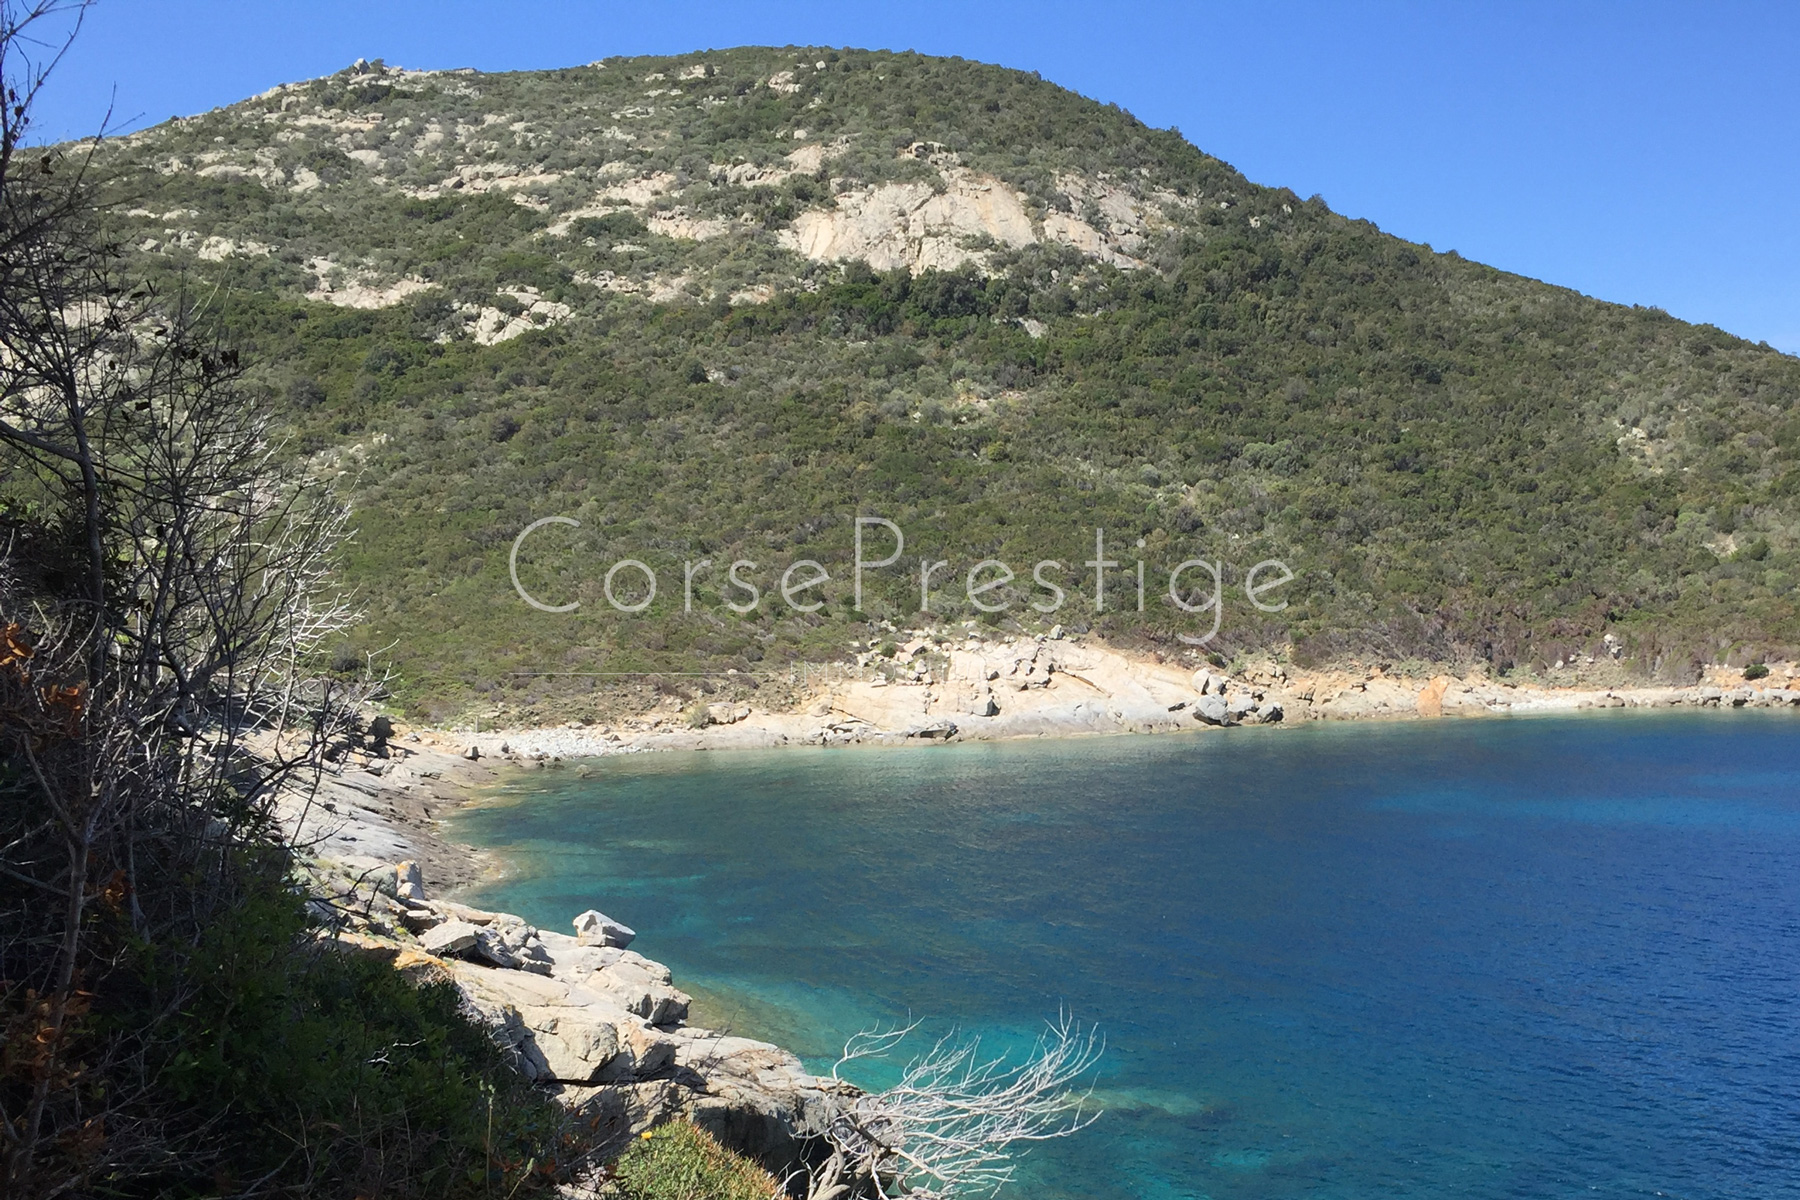 SEAFRONT PROPERTY IN CORSICA - REF 67